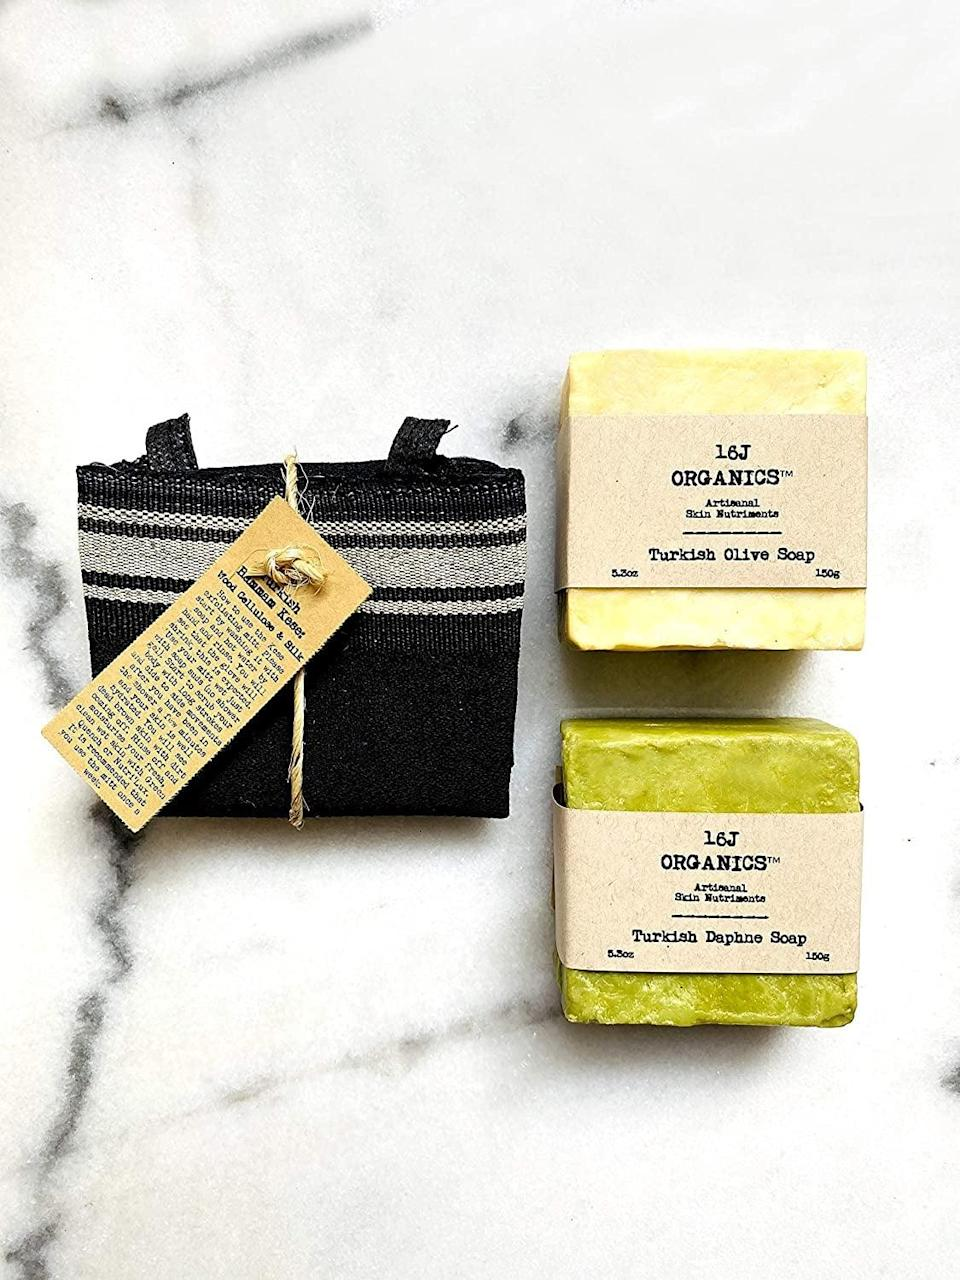 <p>Who doesn't love a good spa day!? Give yourself a relaxing pamper session with the <span>16J Organics Store Turkish Hammam Spa Bath</span> ($29), which includes extrathick kese body scrub mitt and artisanal olive and daphne soaps.</p>